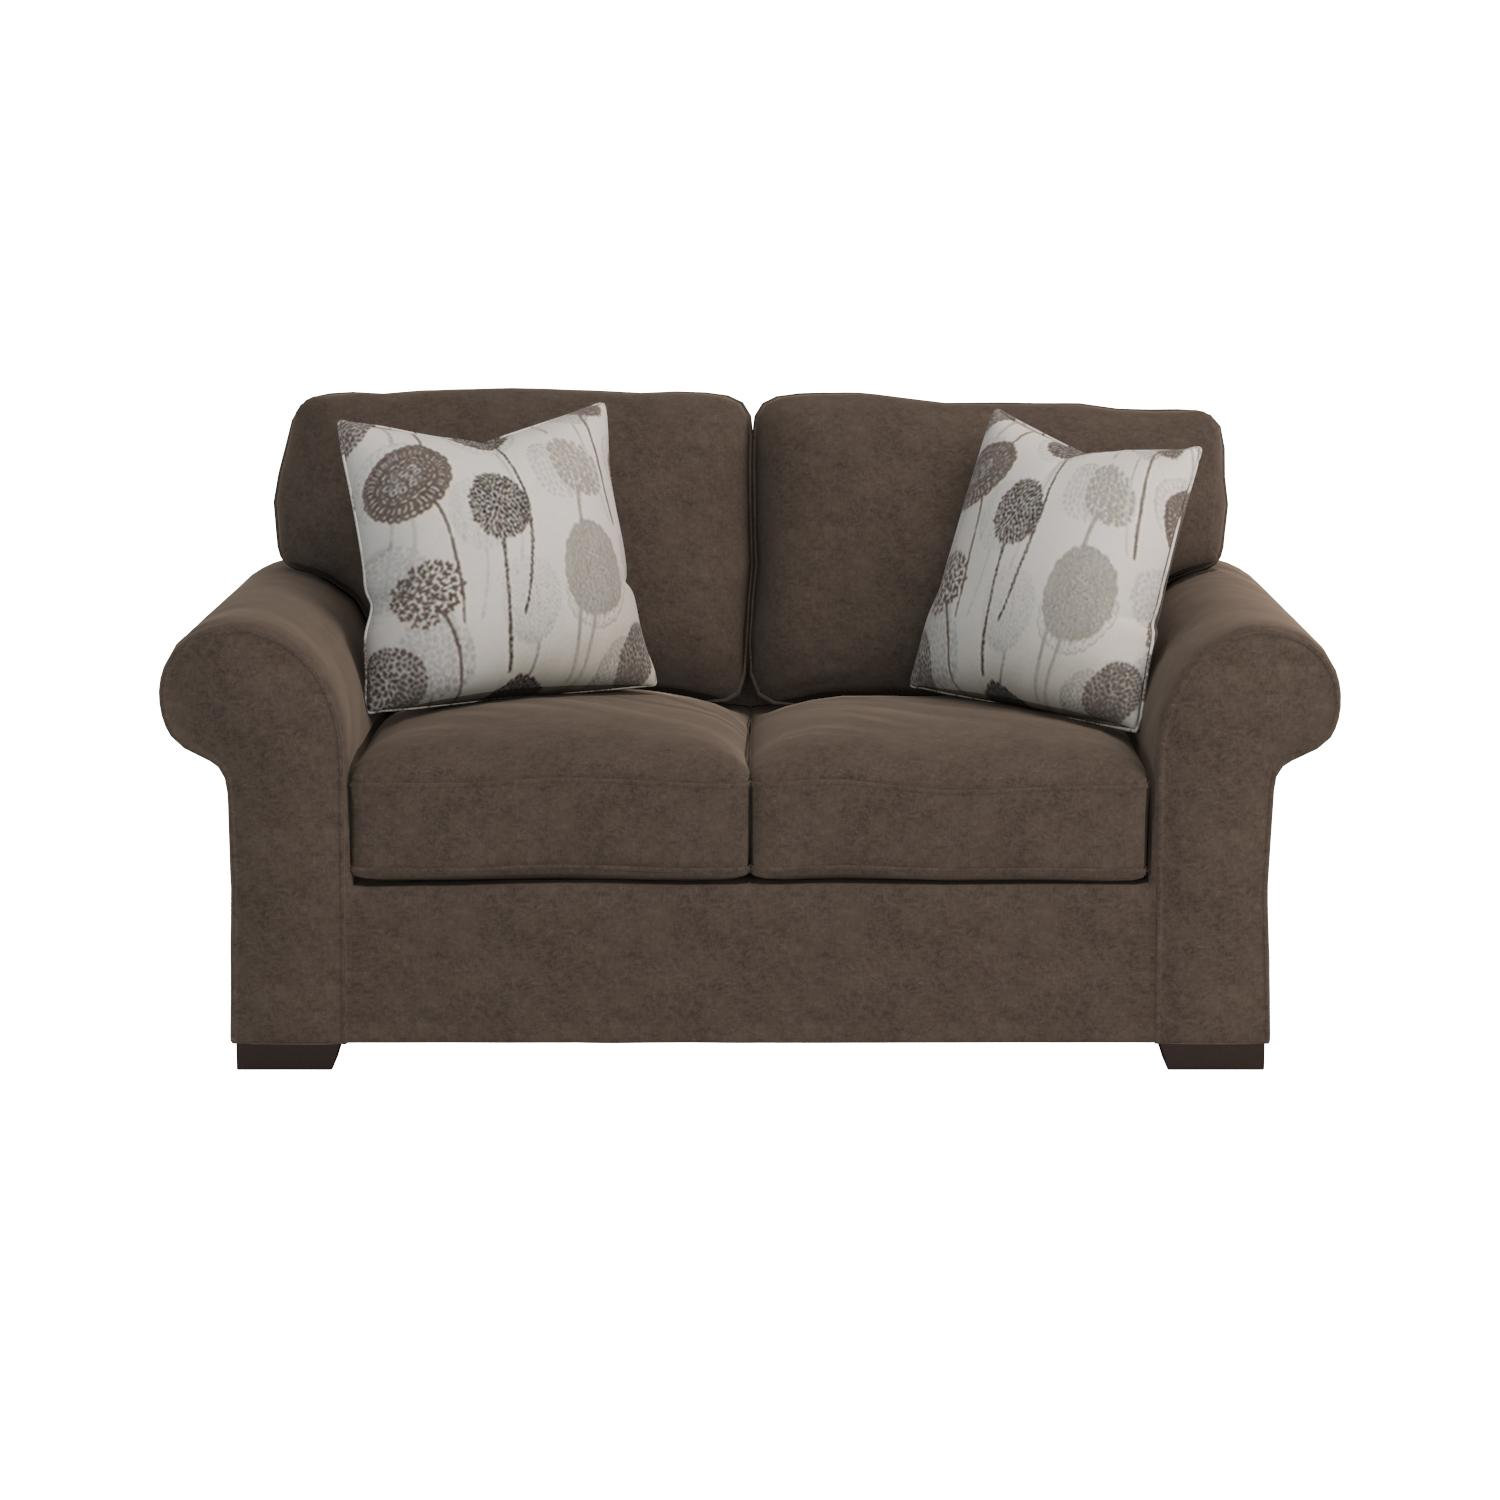 Amazon Roundhill Furniture Fabric Loveseat with 2 Pillows